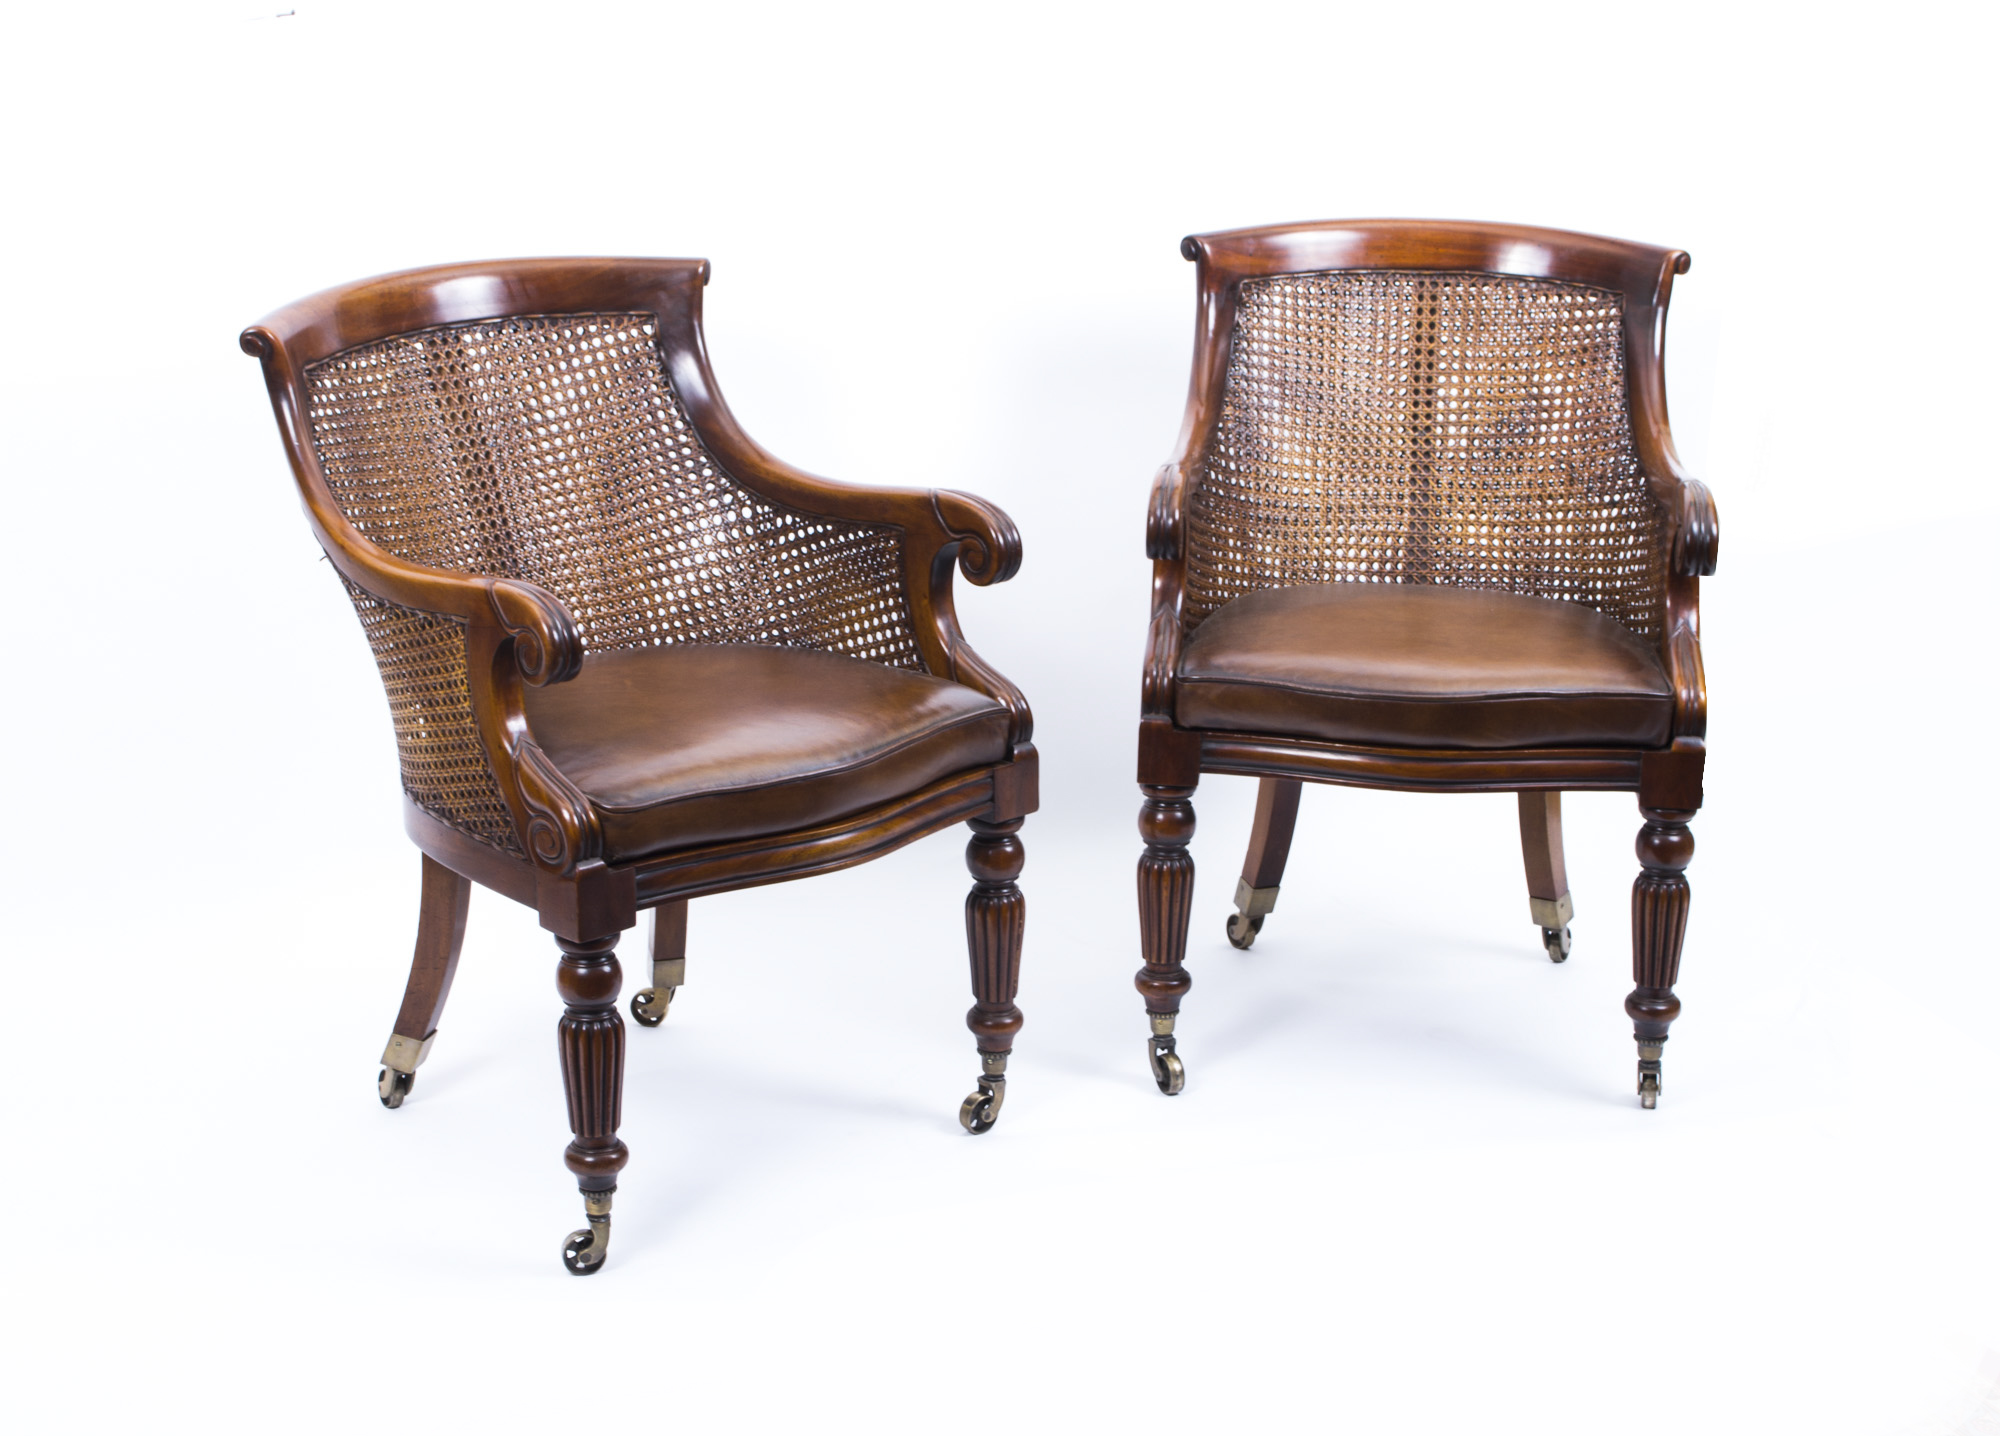 antique library armchairs. antique library armchairs b